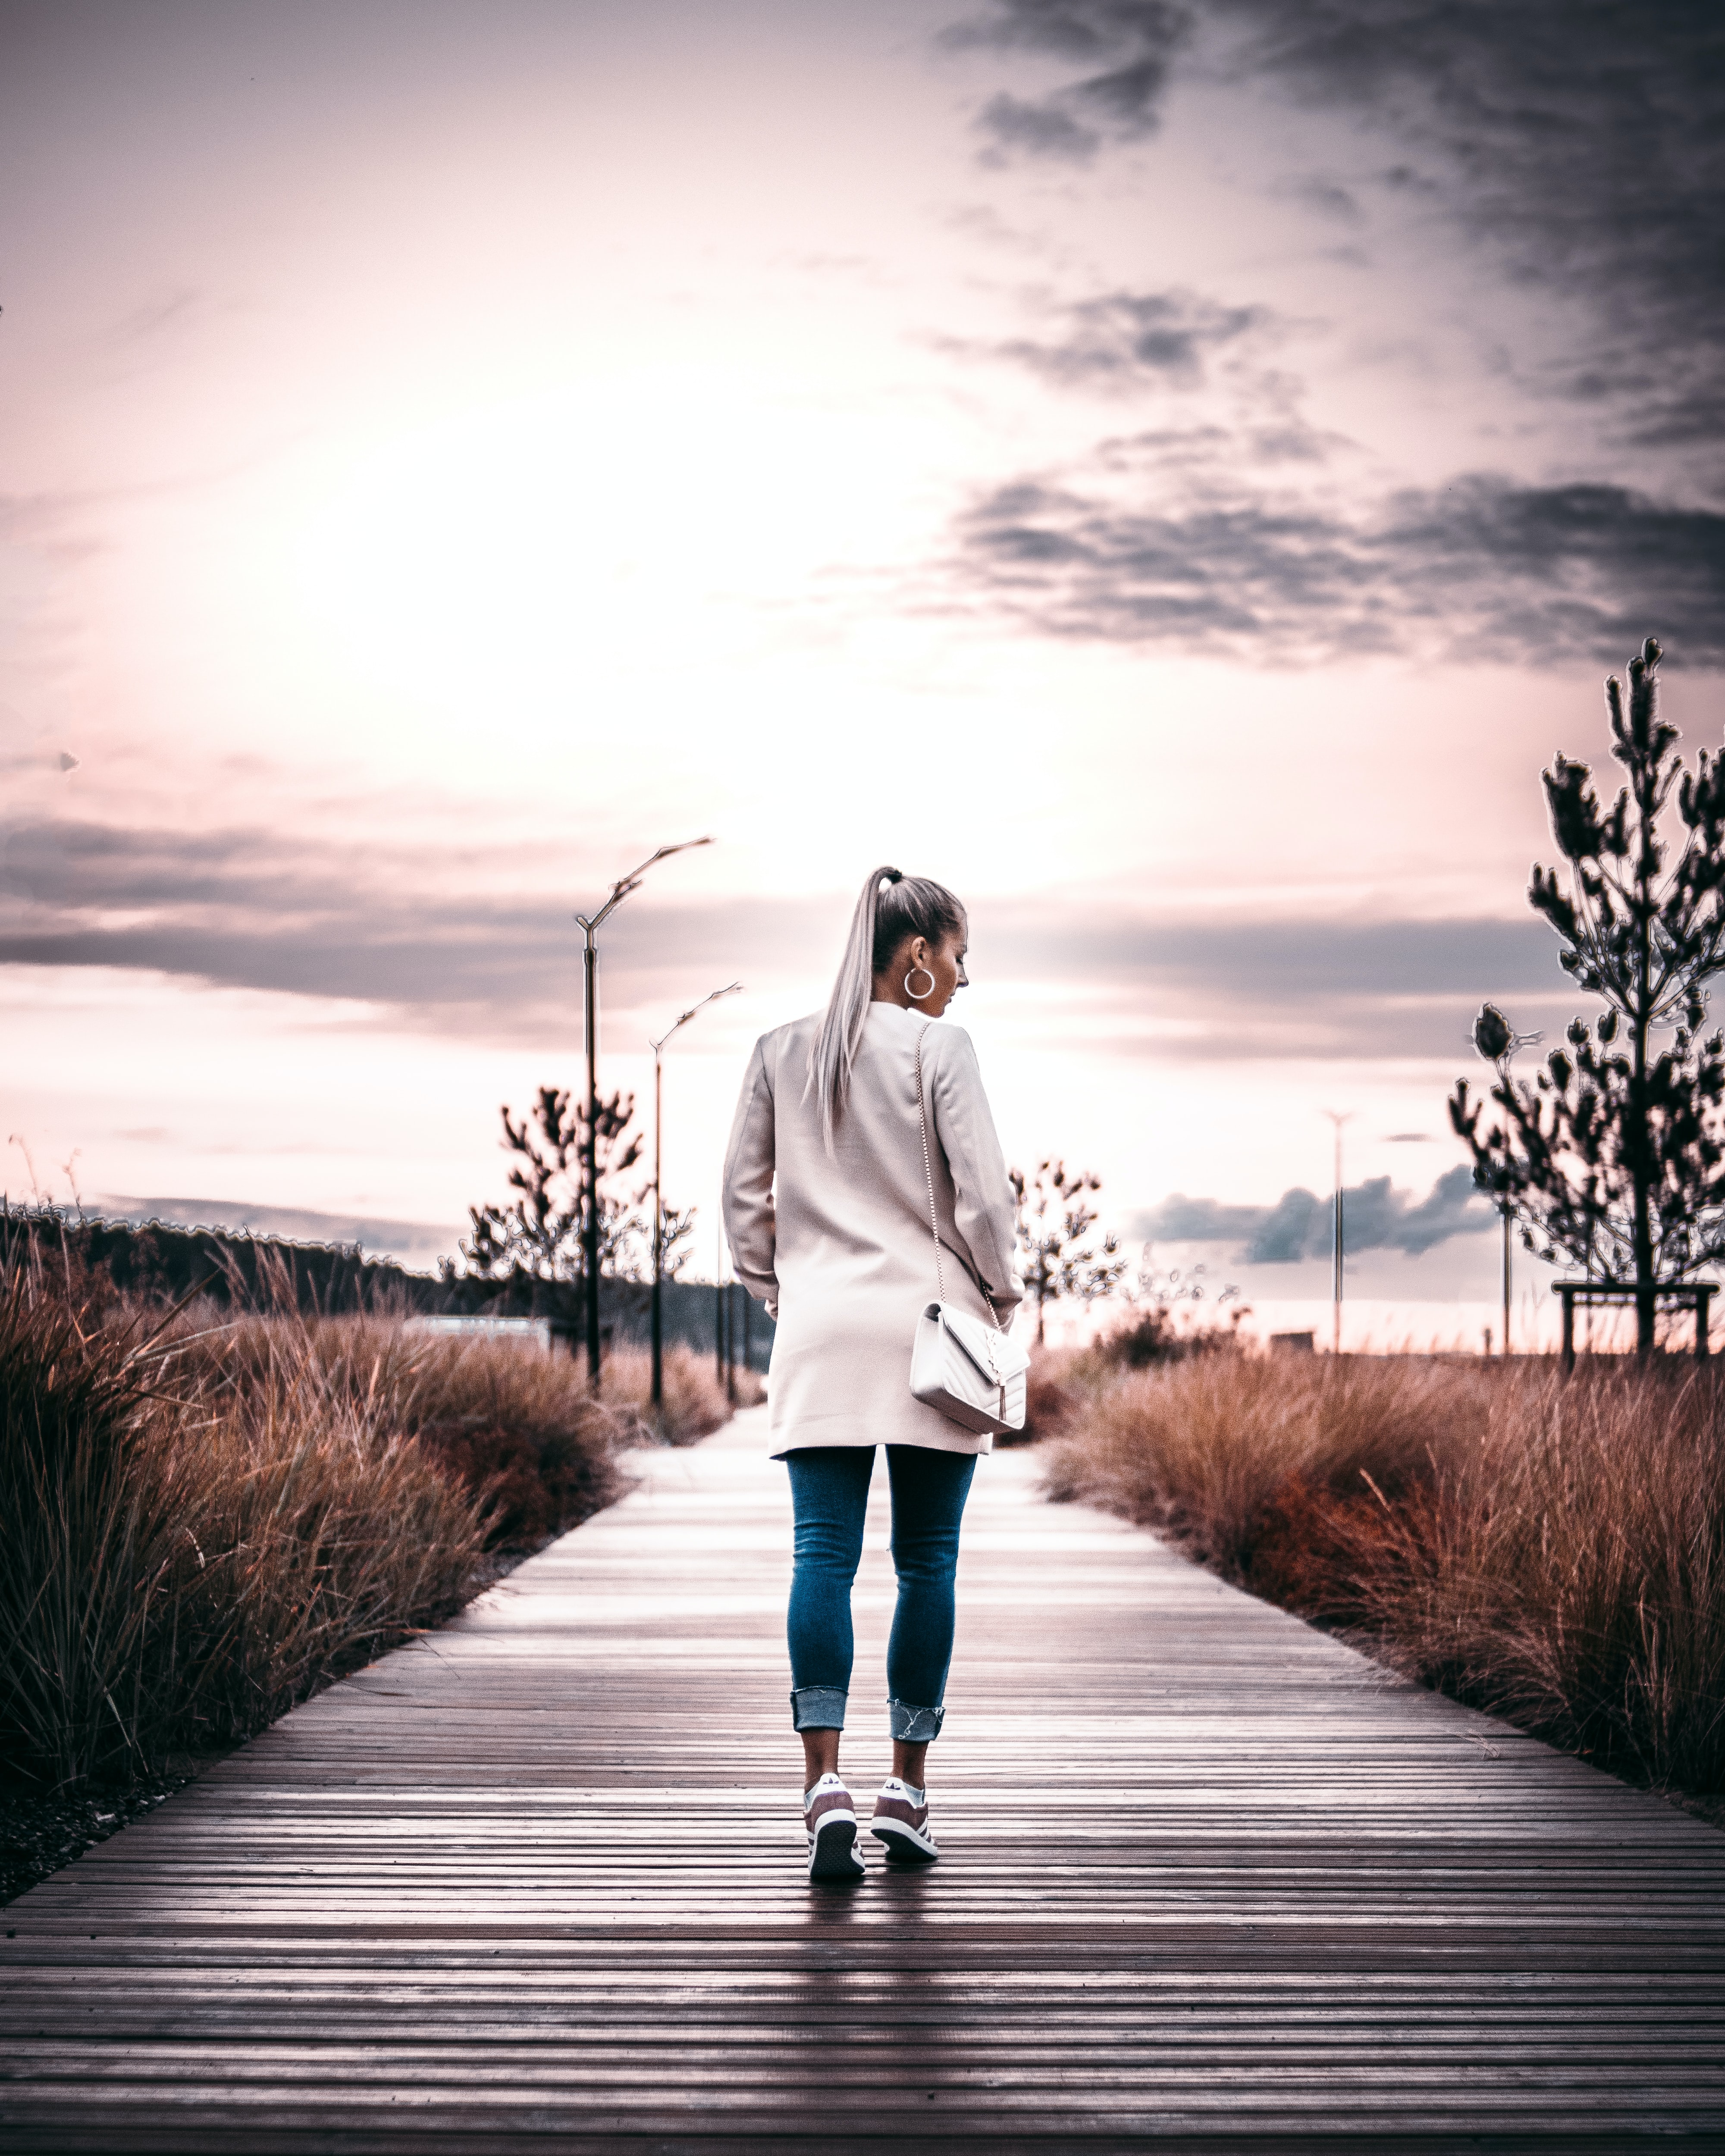 woman wearing white jacket carrying shoulder bag walks on grey concrete road under cloudy sky